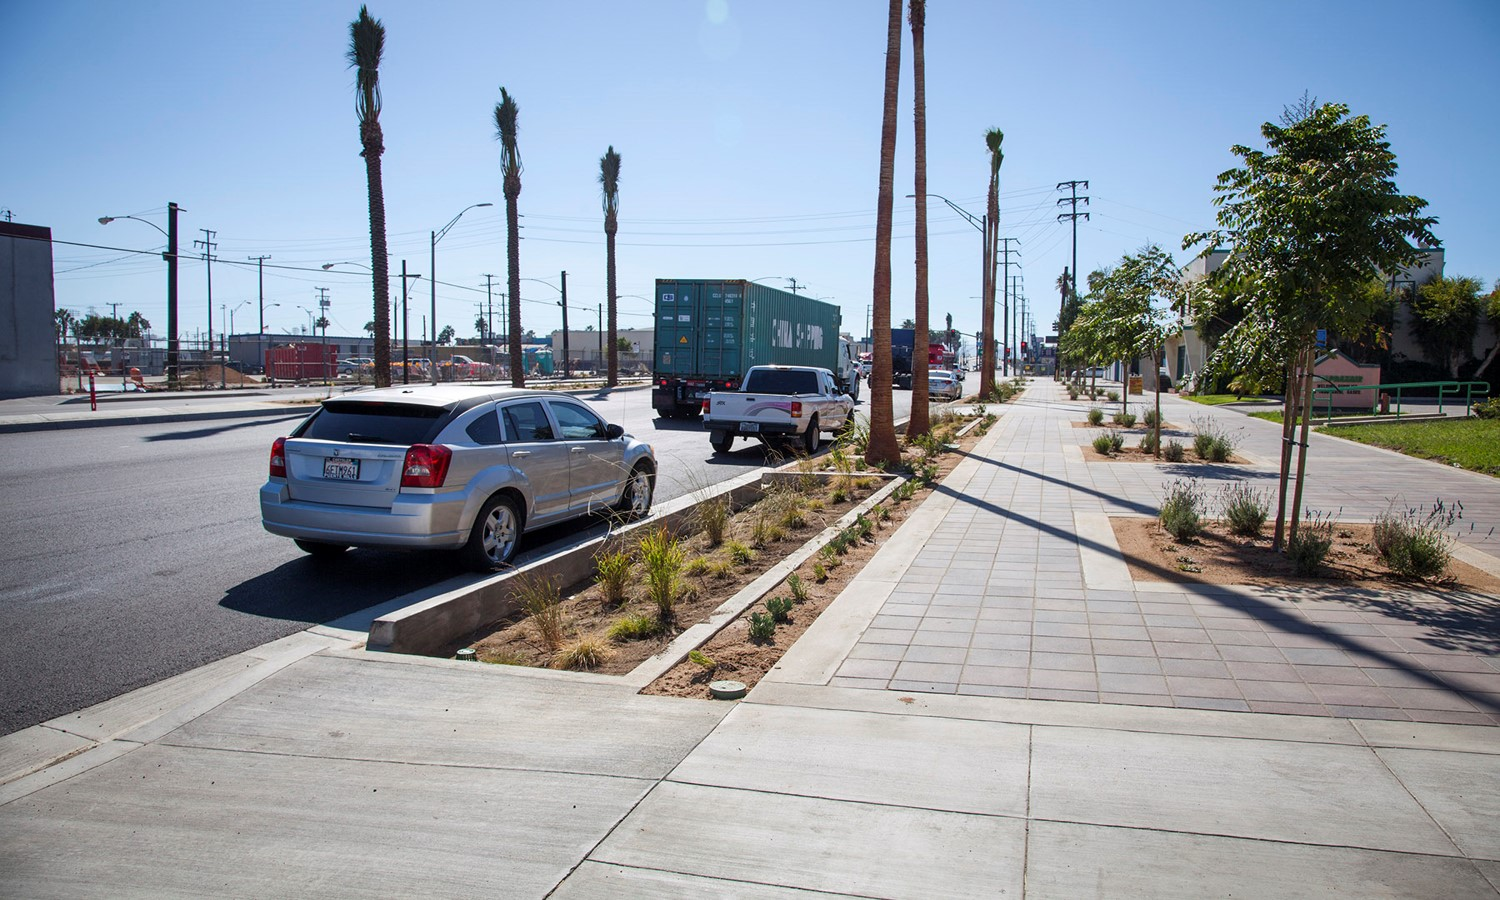 Anaheim Green Street with bioswales, permeable pavers, and drought-tolerant landscaping. Image by Port of Long Beach